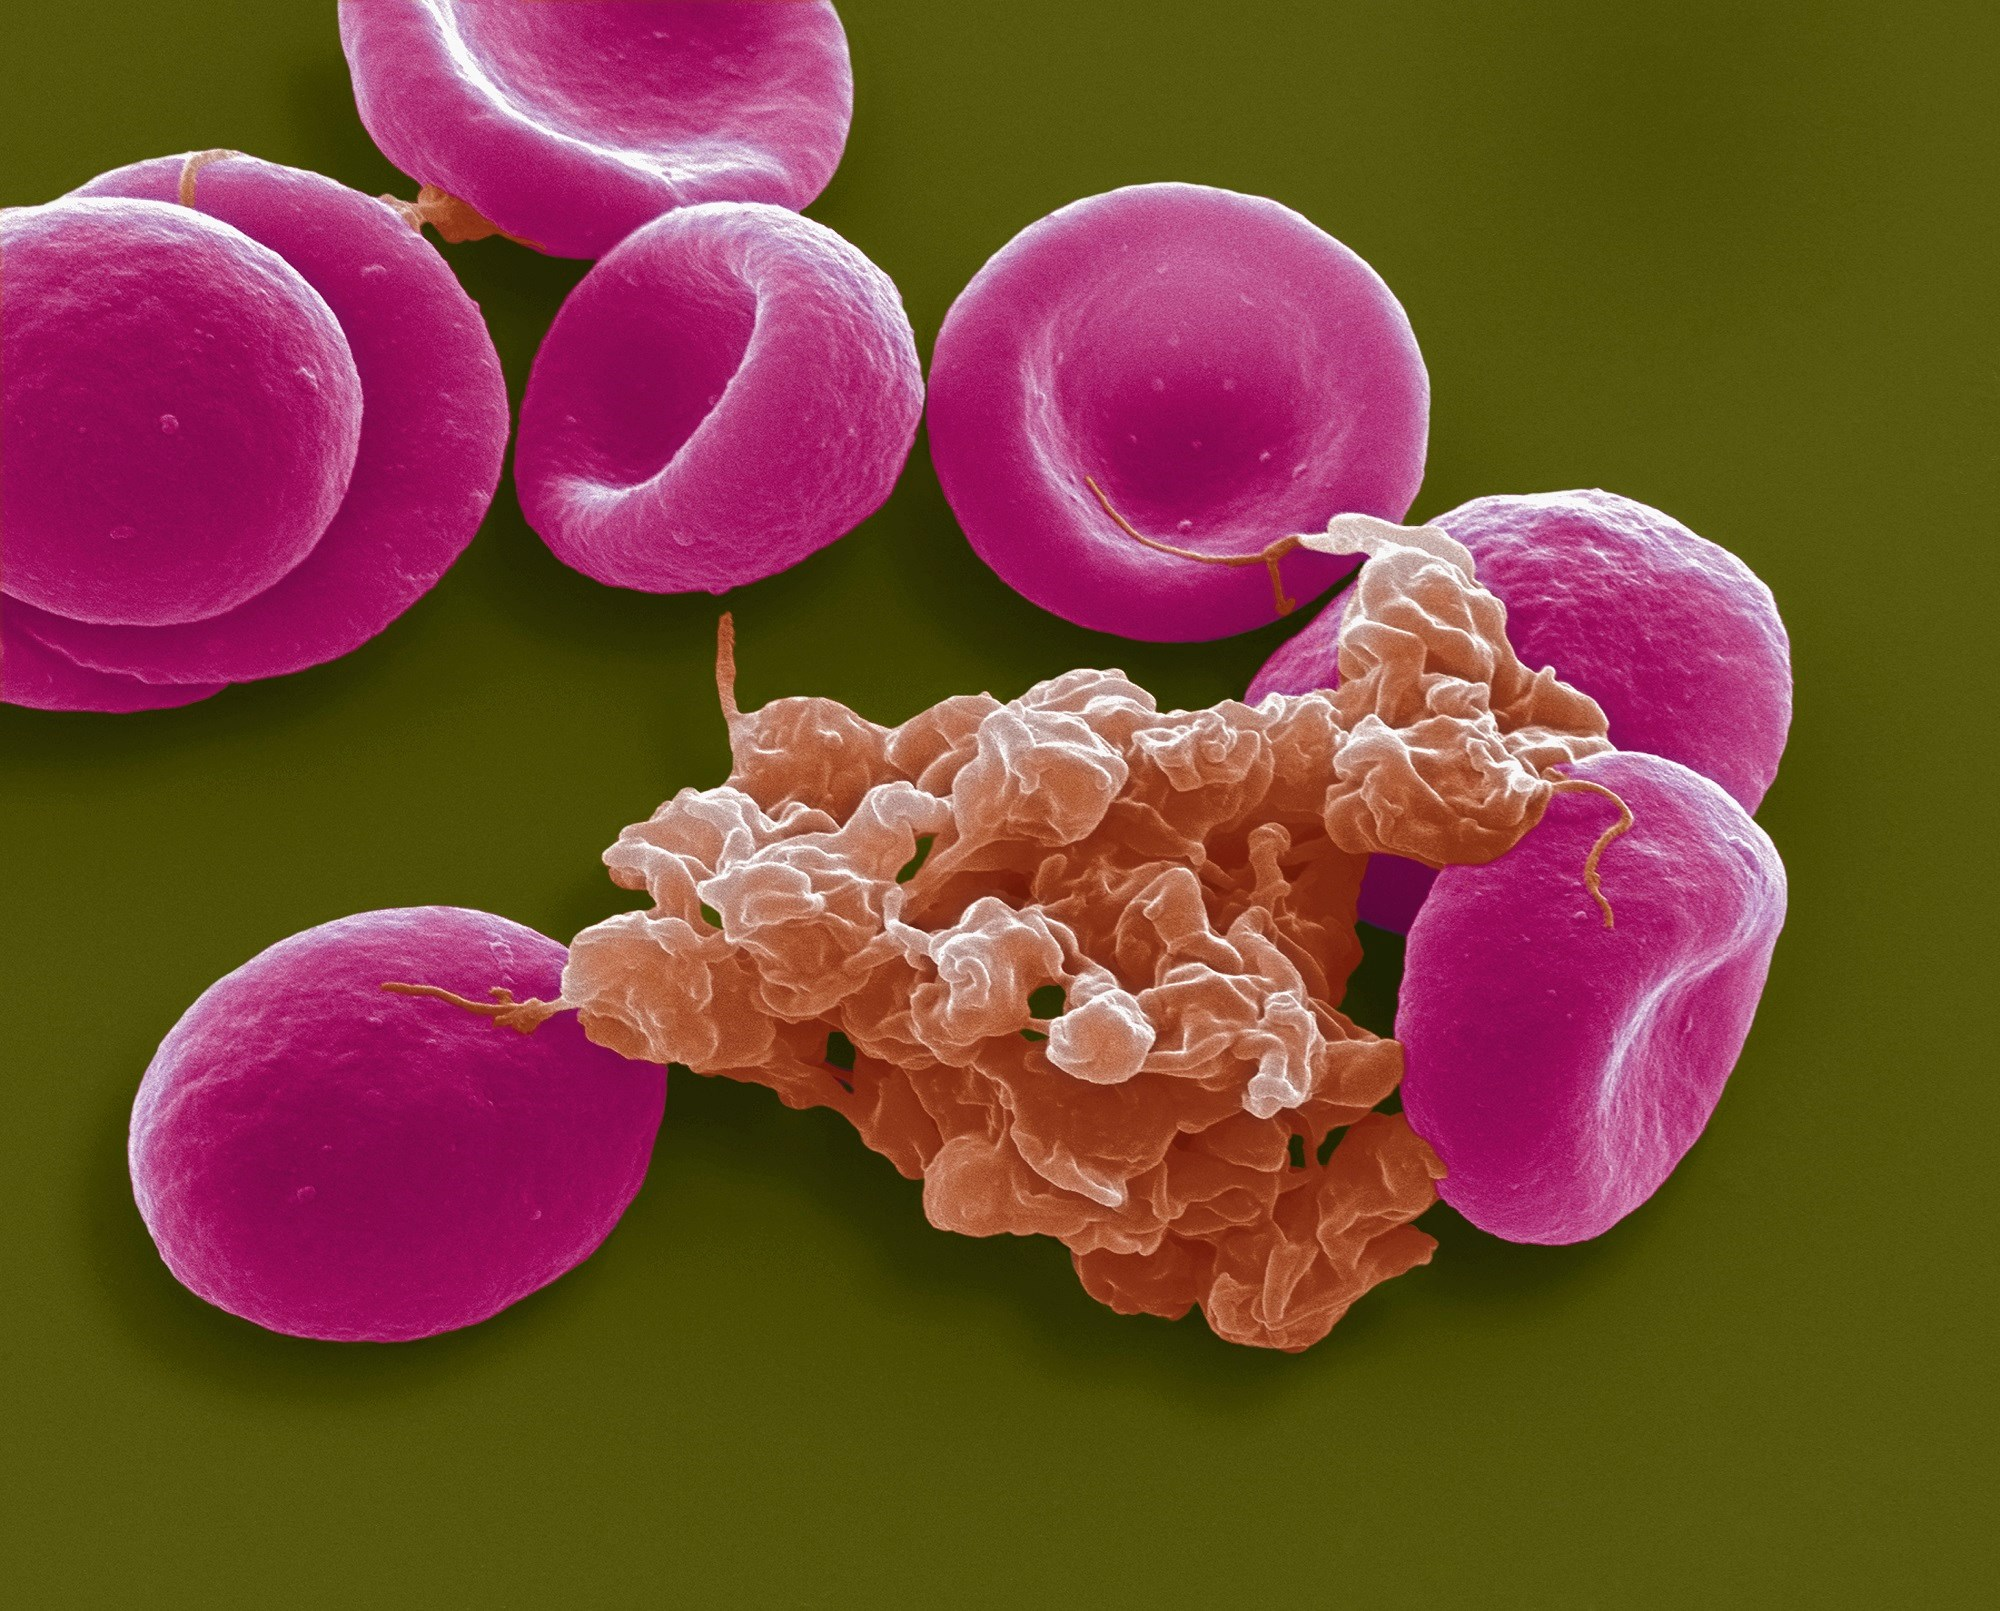 Baseline Thrombocytopenia Associated With Mortality Risk in VTE